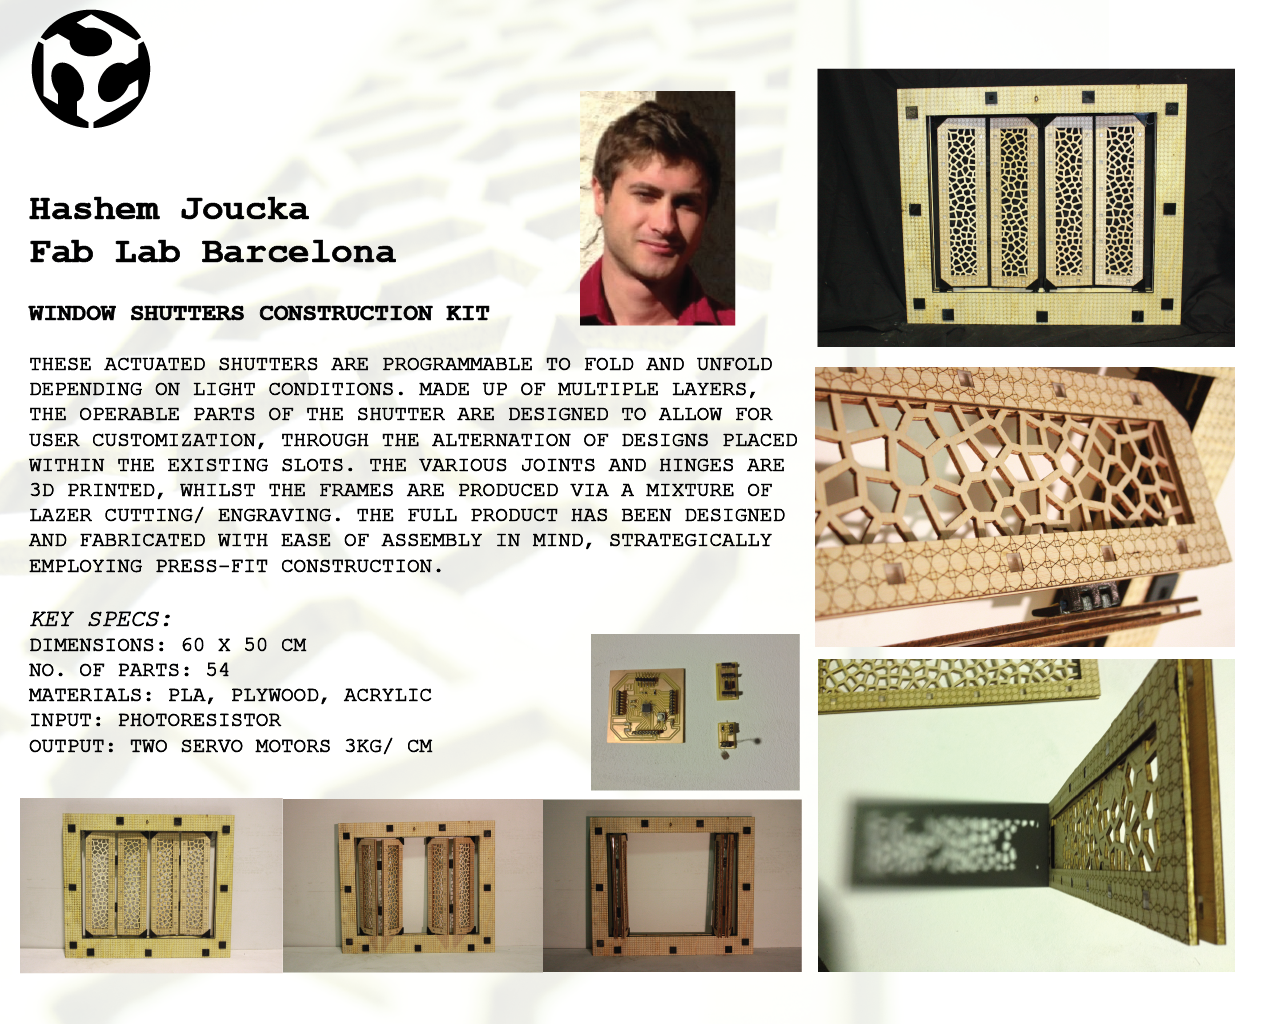 Peter Fearey Fabacademy 2014 About Circuit Construction Kit Ac Dc Only Automatic Adjusting Window Shutter Hashem Joucka